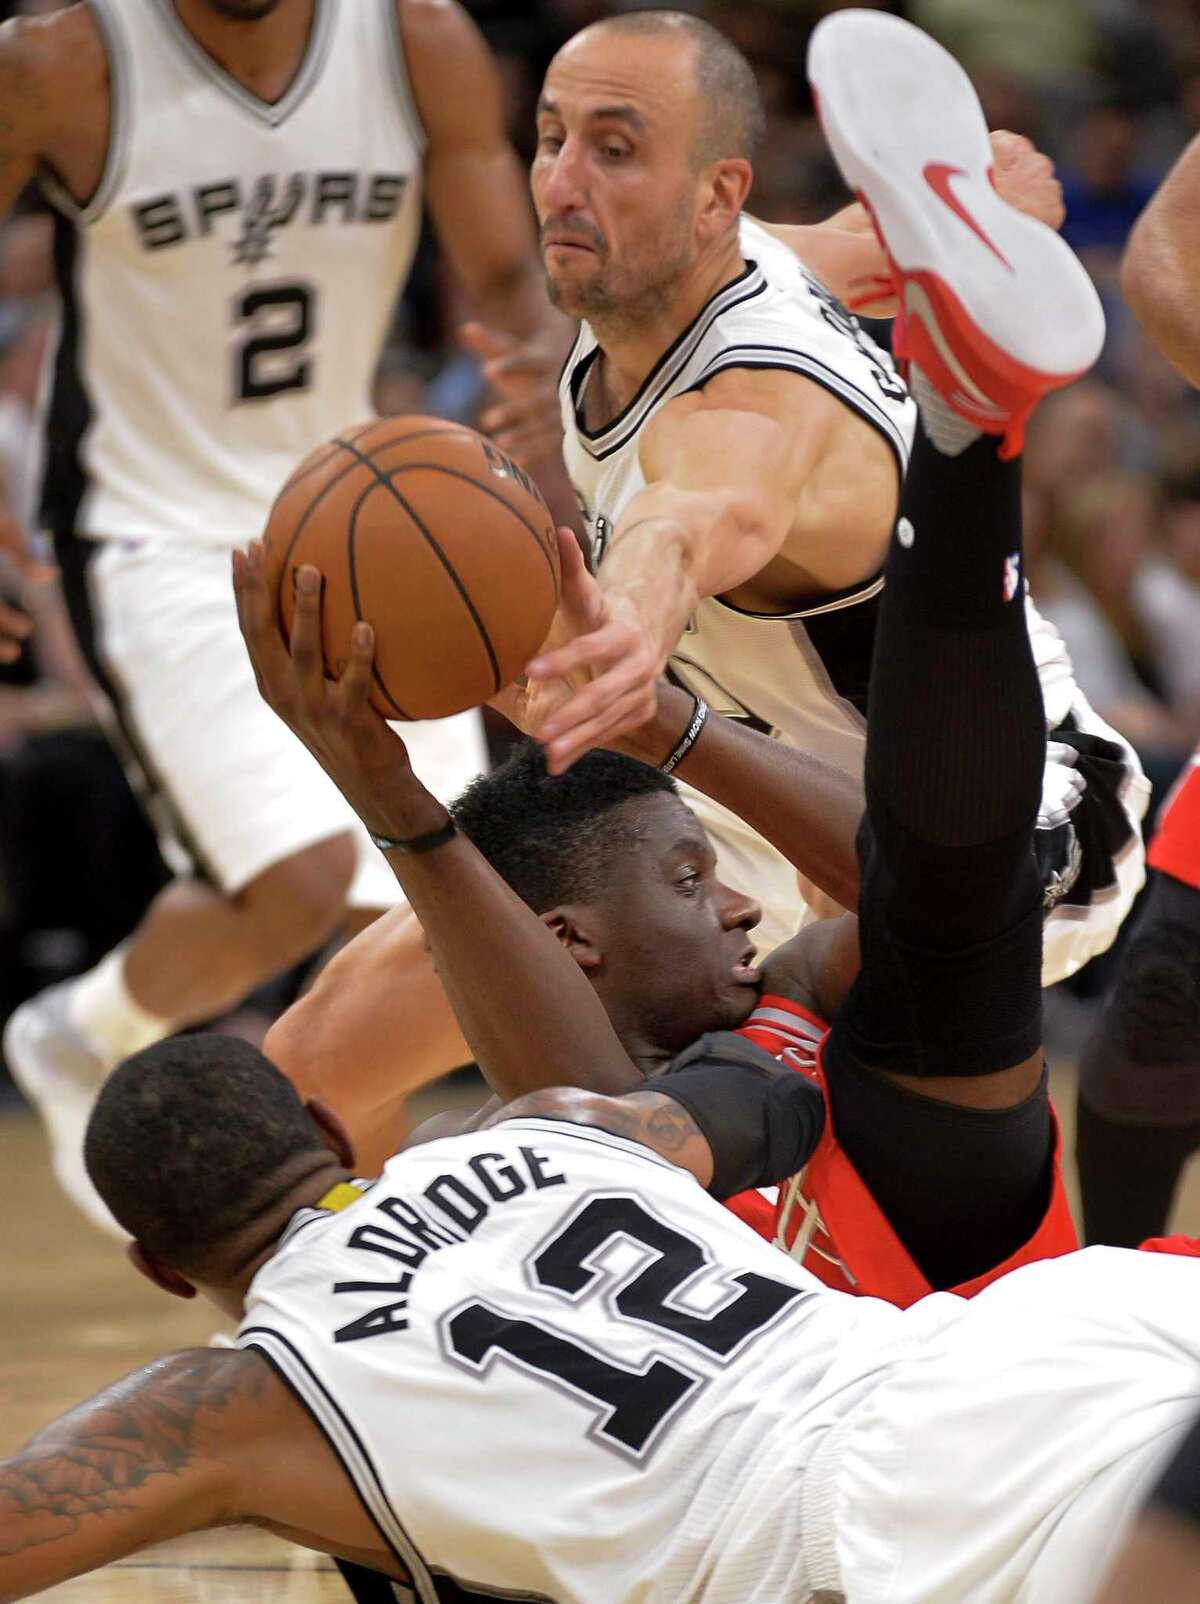 Houston Rockets center Clint Capela, center, of Switzerland, fights for control of the ball against San Antonio Spurs' Manu Ginobili, top, of Argentina, and LaMarcus Aldridge during the first half of an NBA basketball game, Monday, March 6, 2017, in San Antonio. (AP Photo/Darren Abate)